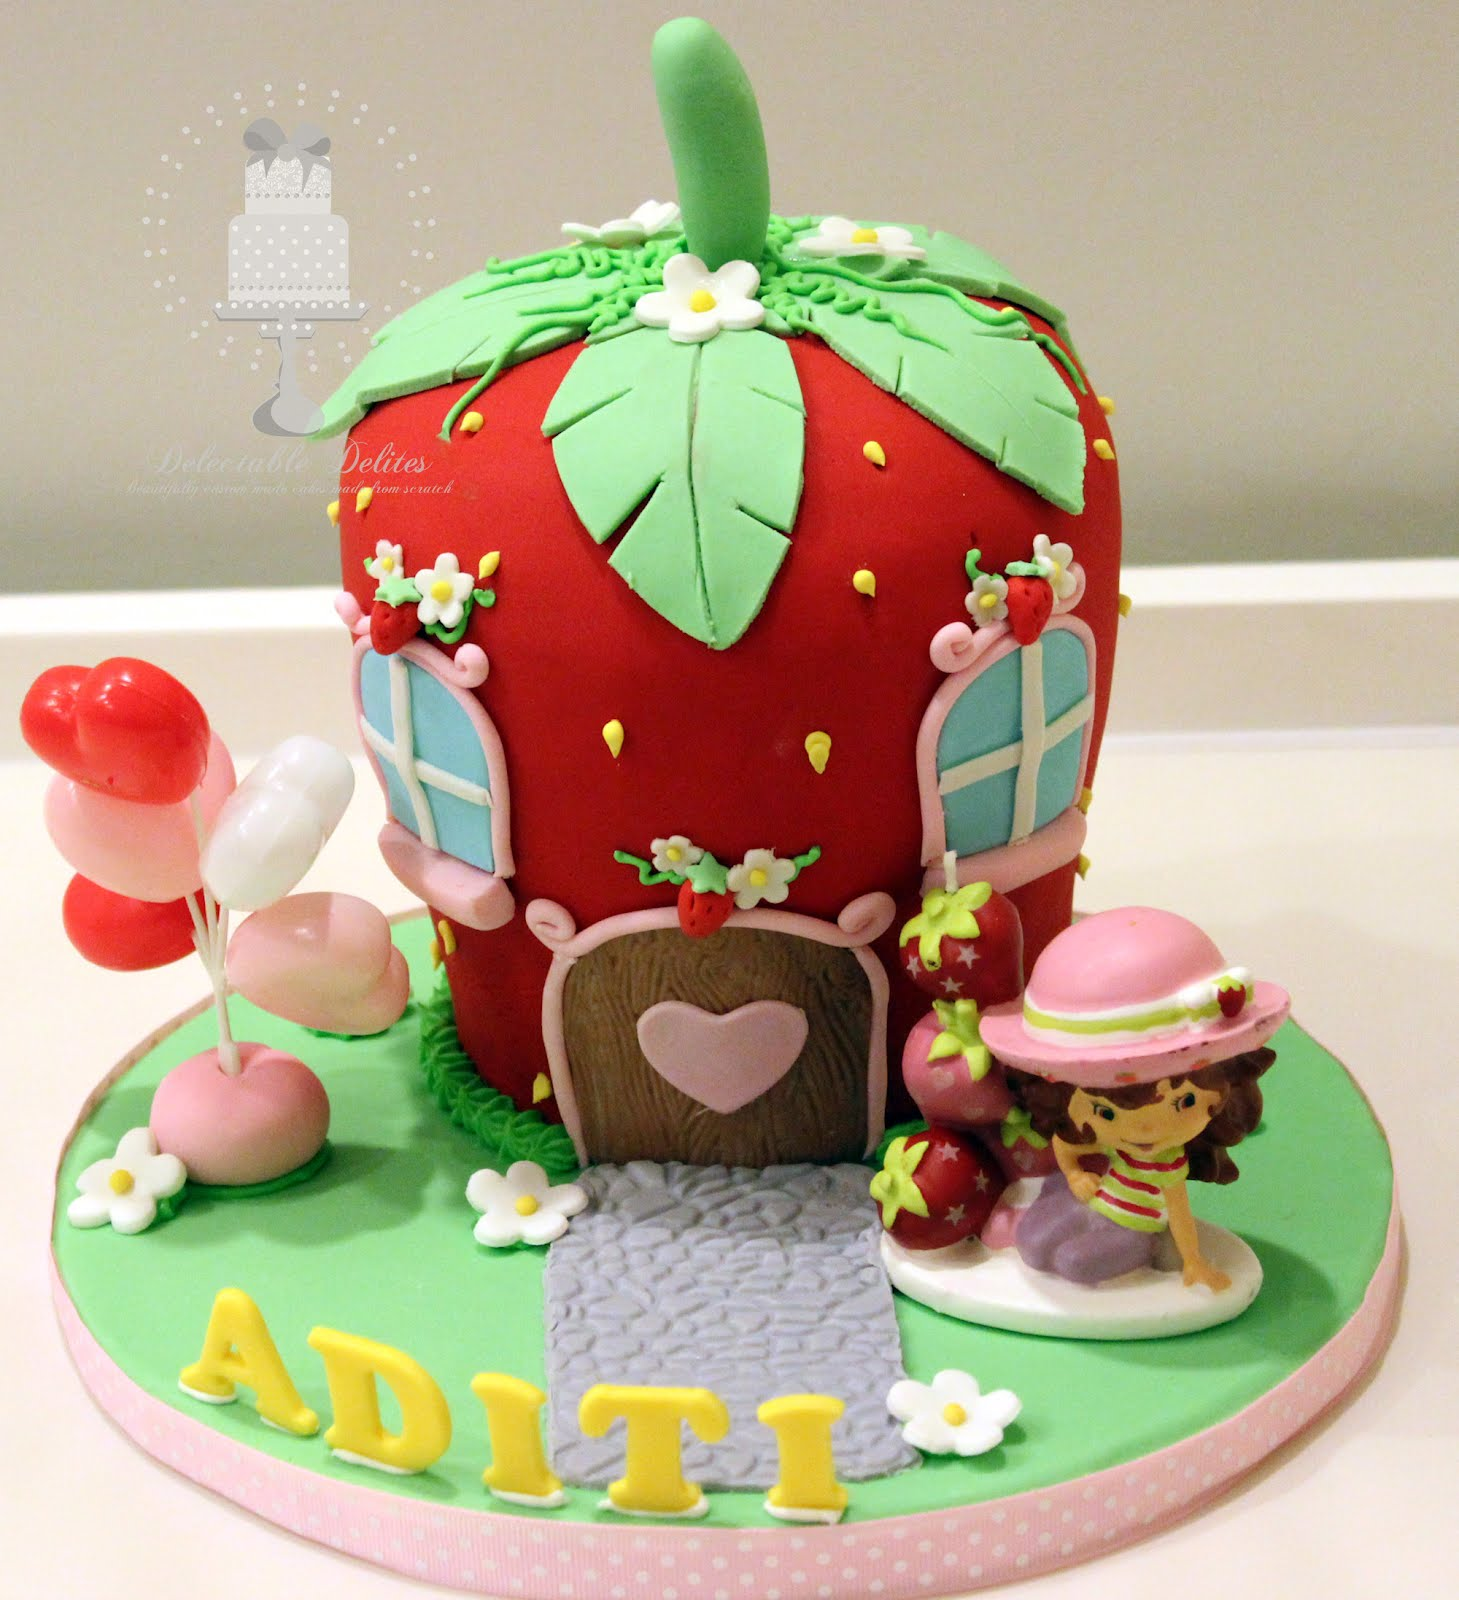 Birthday Cakes Images For Name Aditi ~ Delectable delites strawberry shortcake house for aditi s th birthday